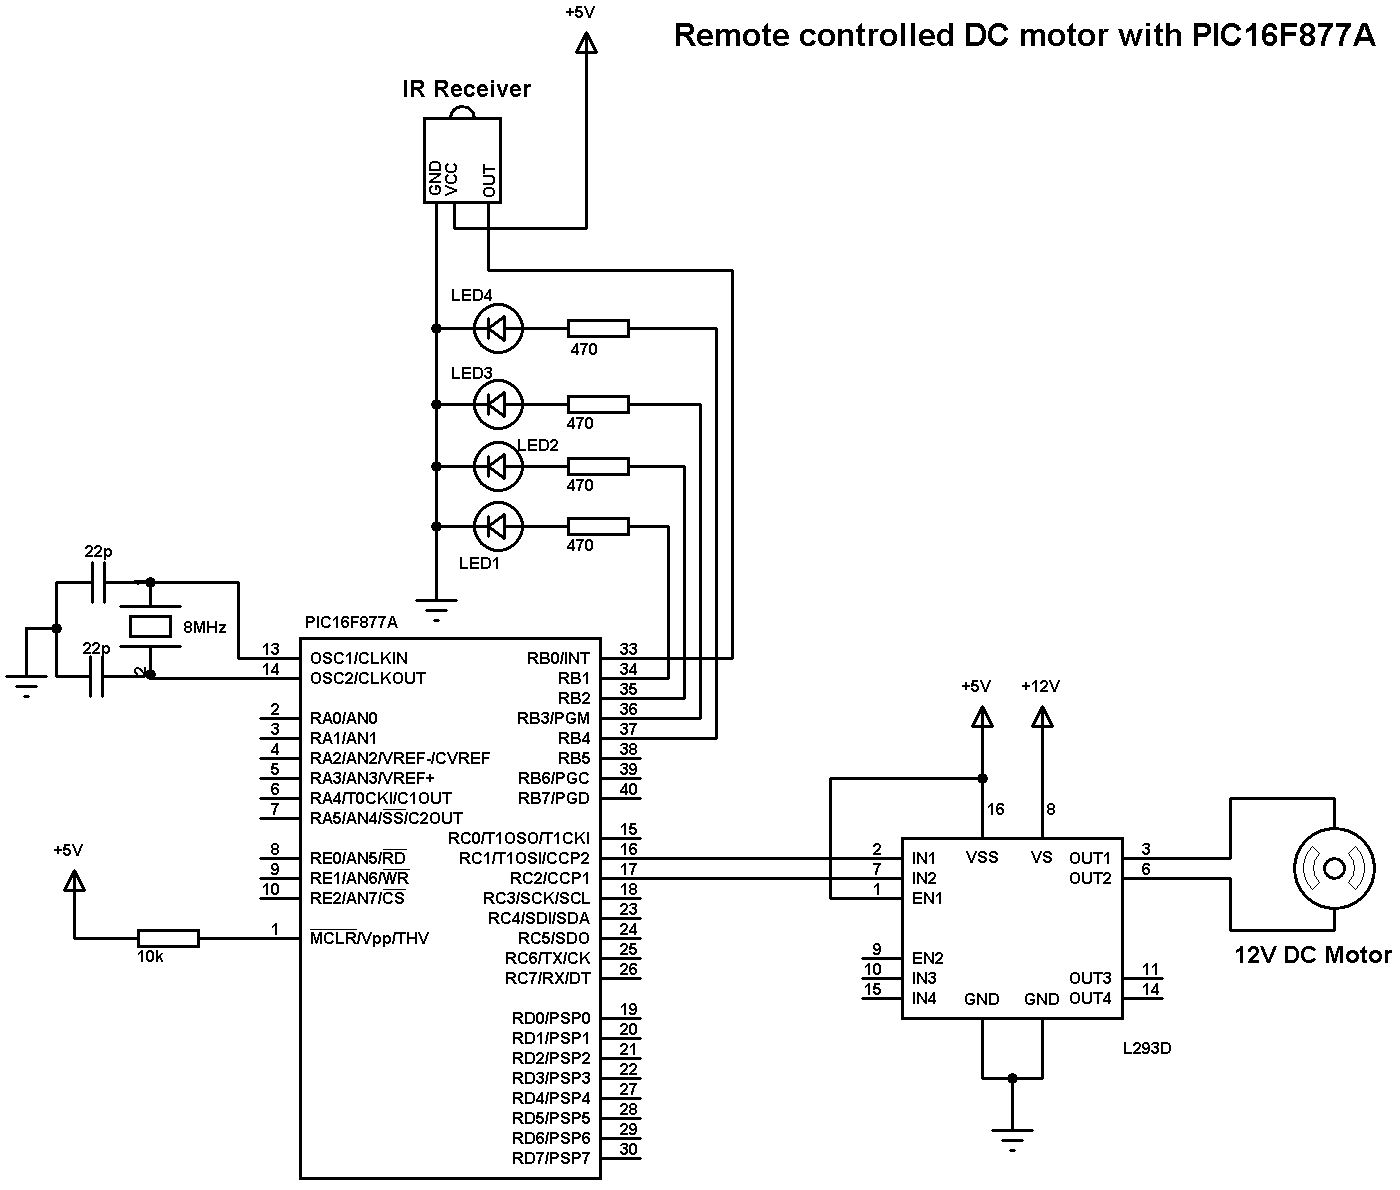 Remote Controlled Dc Motor Using Pic16f877a And Ccs C L293d Pin Diagram